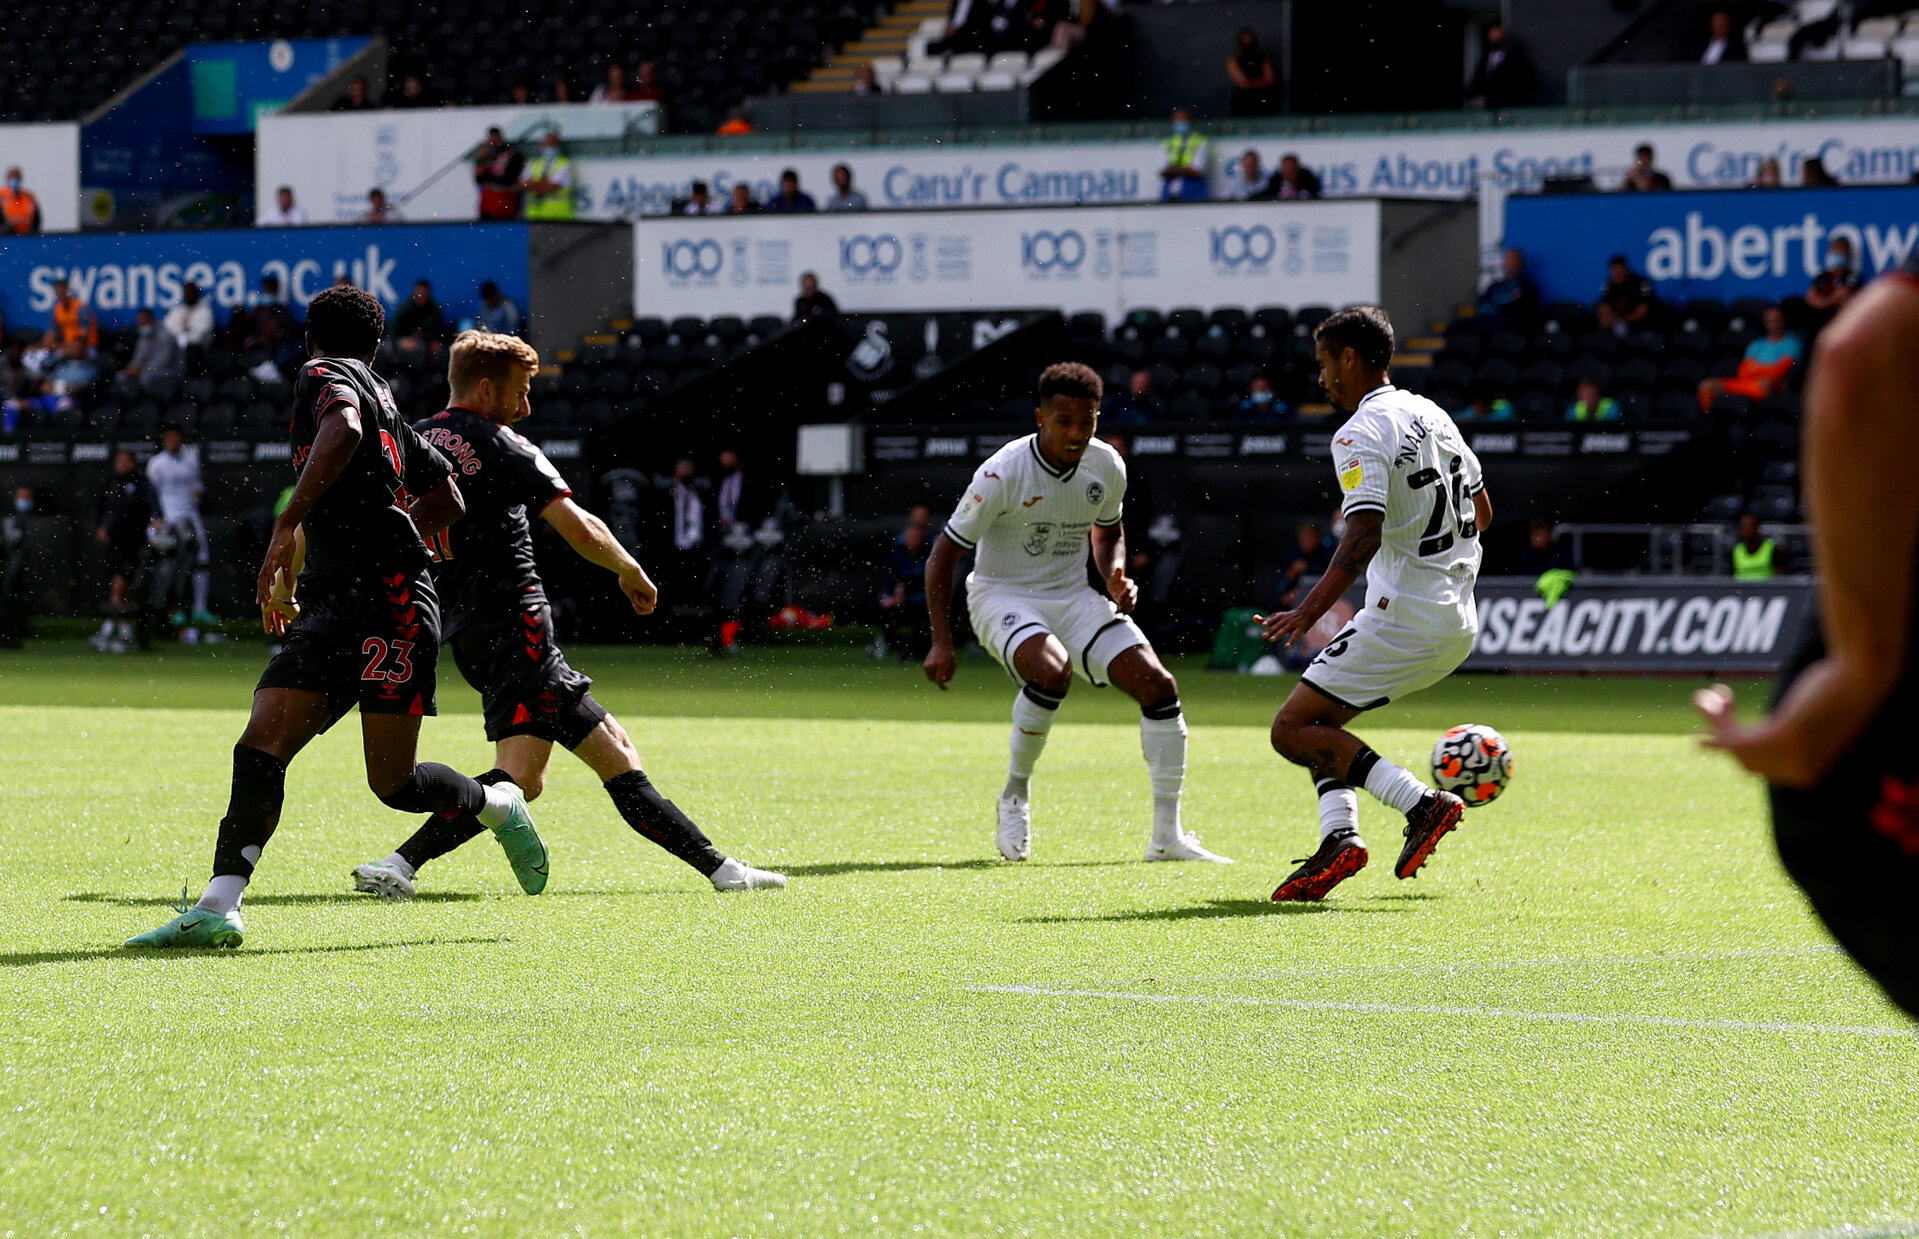 SWANSEA, WALES - JULY 31: Stuart Armstrong of Southampton scores his teams third goal during the pre-season friendly match between Swansea City and Southampton FC, at The Liberty Stadium on July 31, 2021 in Swansea, Wales. (Photo by Matt Watson/Southampton FC via Getty Images)